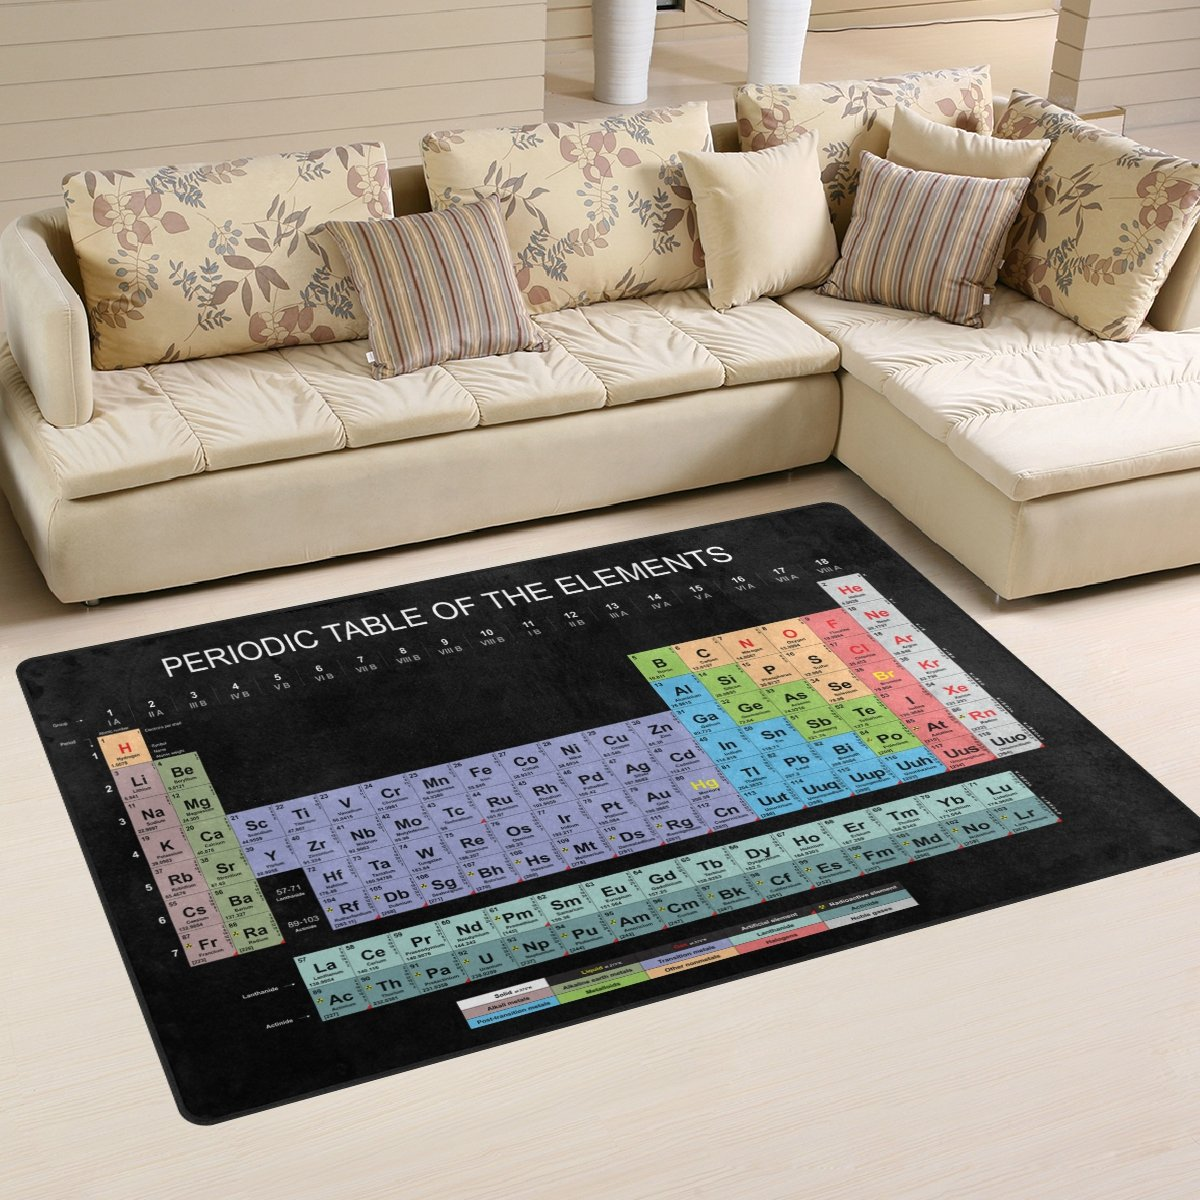 LORVIES Periodic Table Area Rug Carpet Non-Slip Floor Mat Doormats for Living Room Bedroom 31 x 20 inches 114